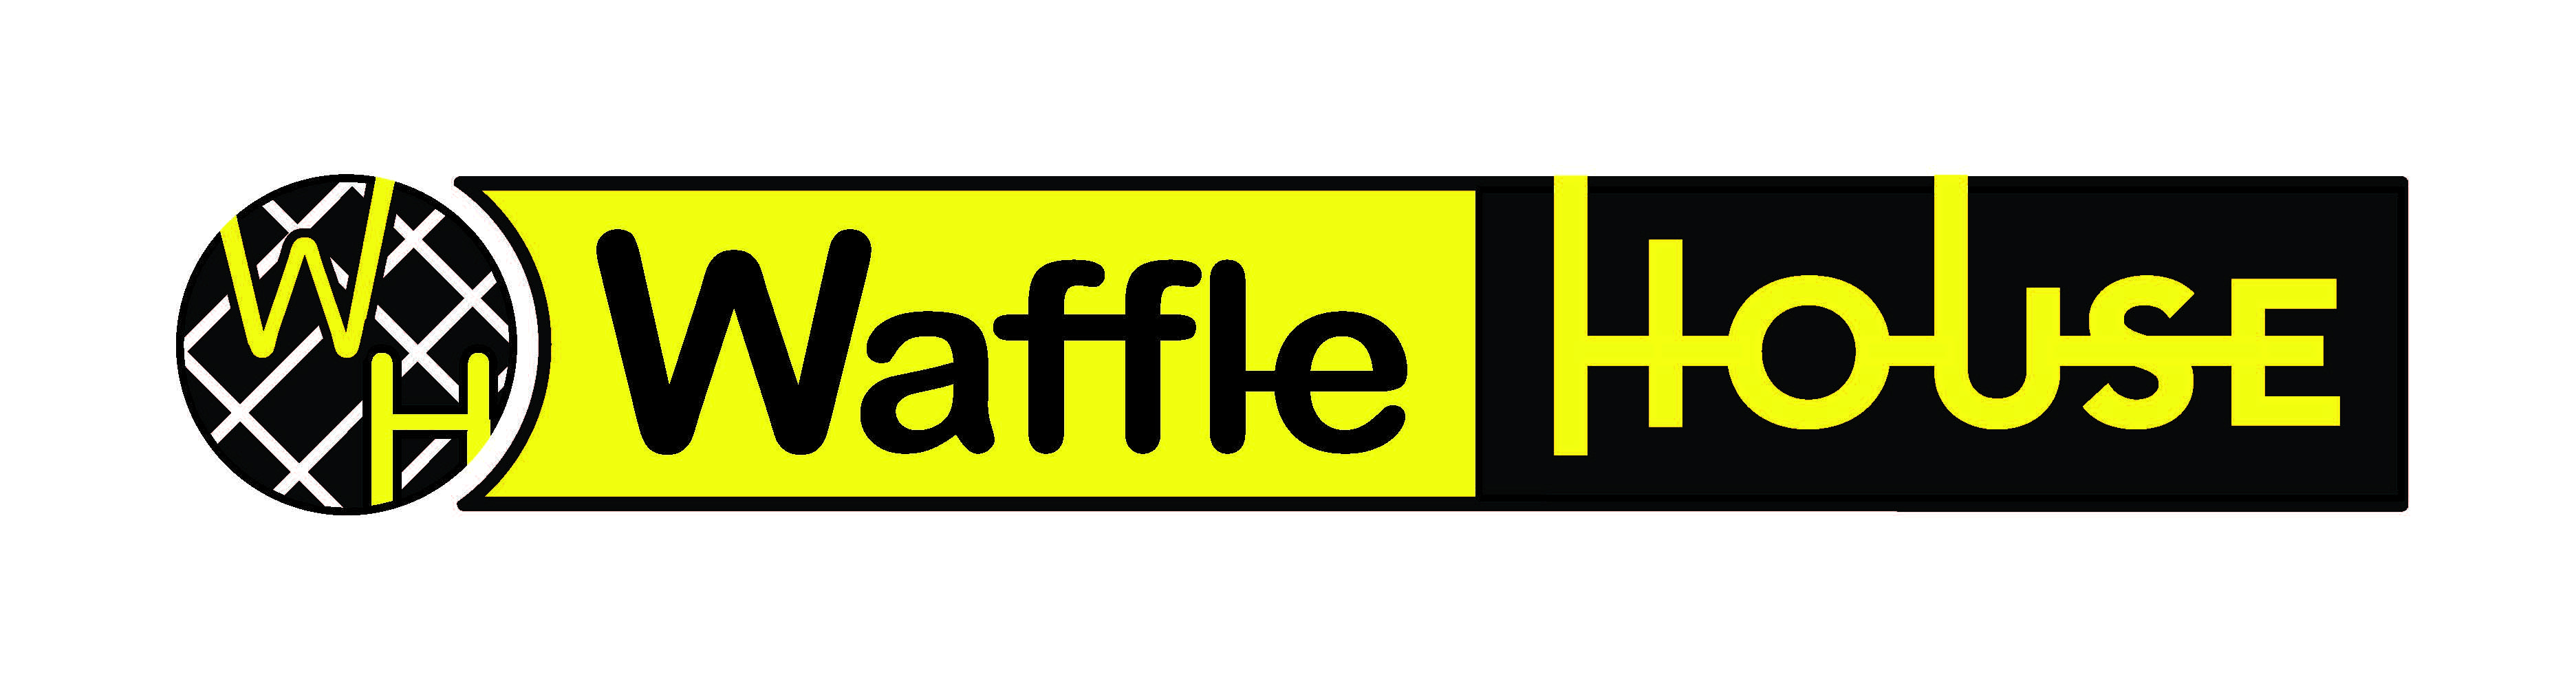 Waffle House Logos Color_Page_5